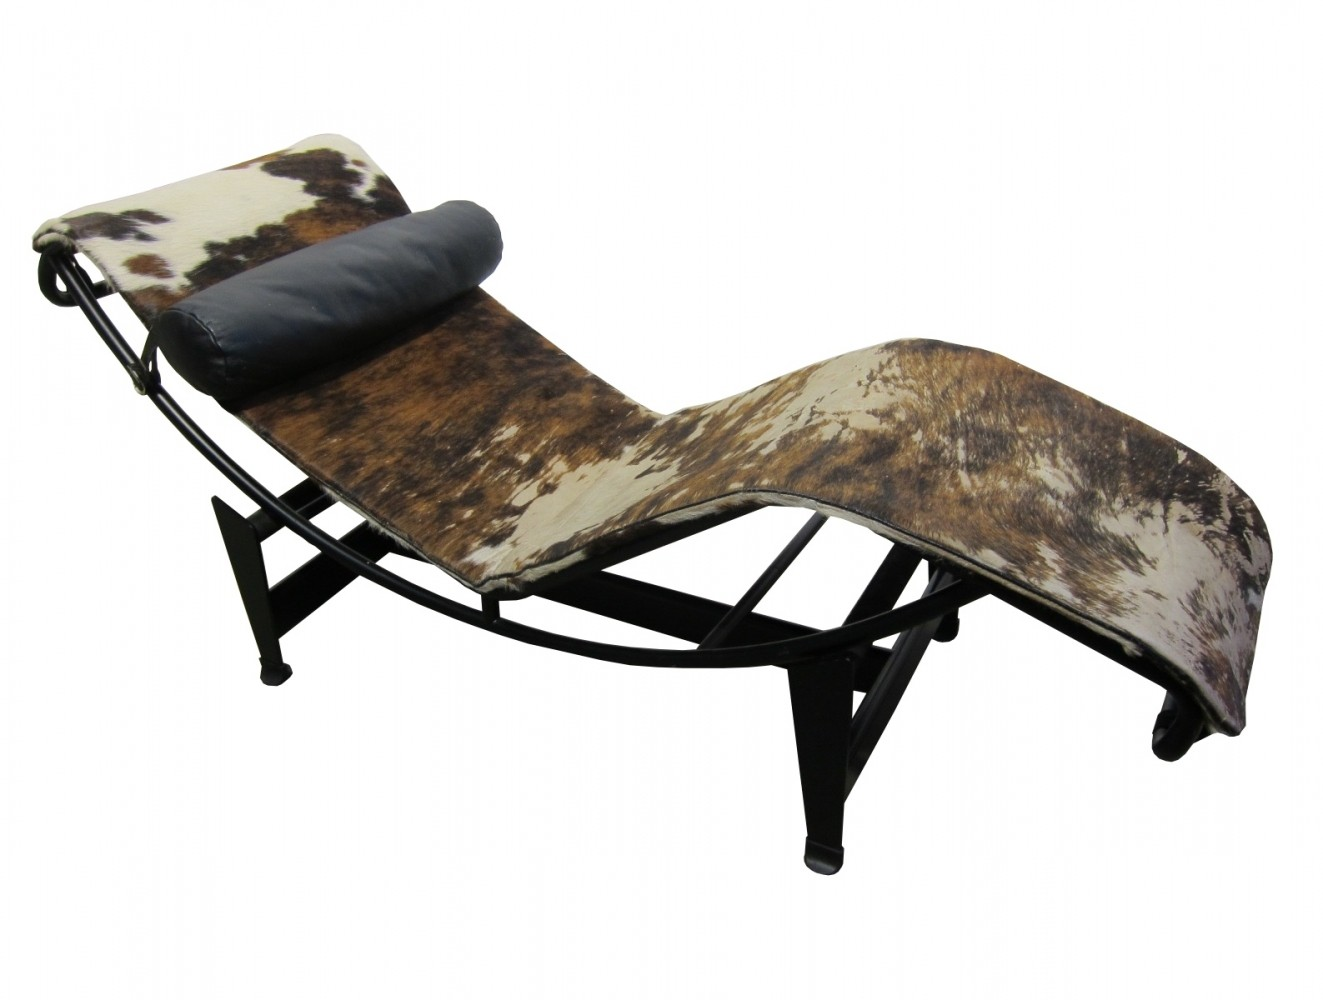 Vintage lc4 39 chaise longue 39 in cowhide by le corbusier for for Chaise longue design le corbusier